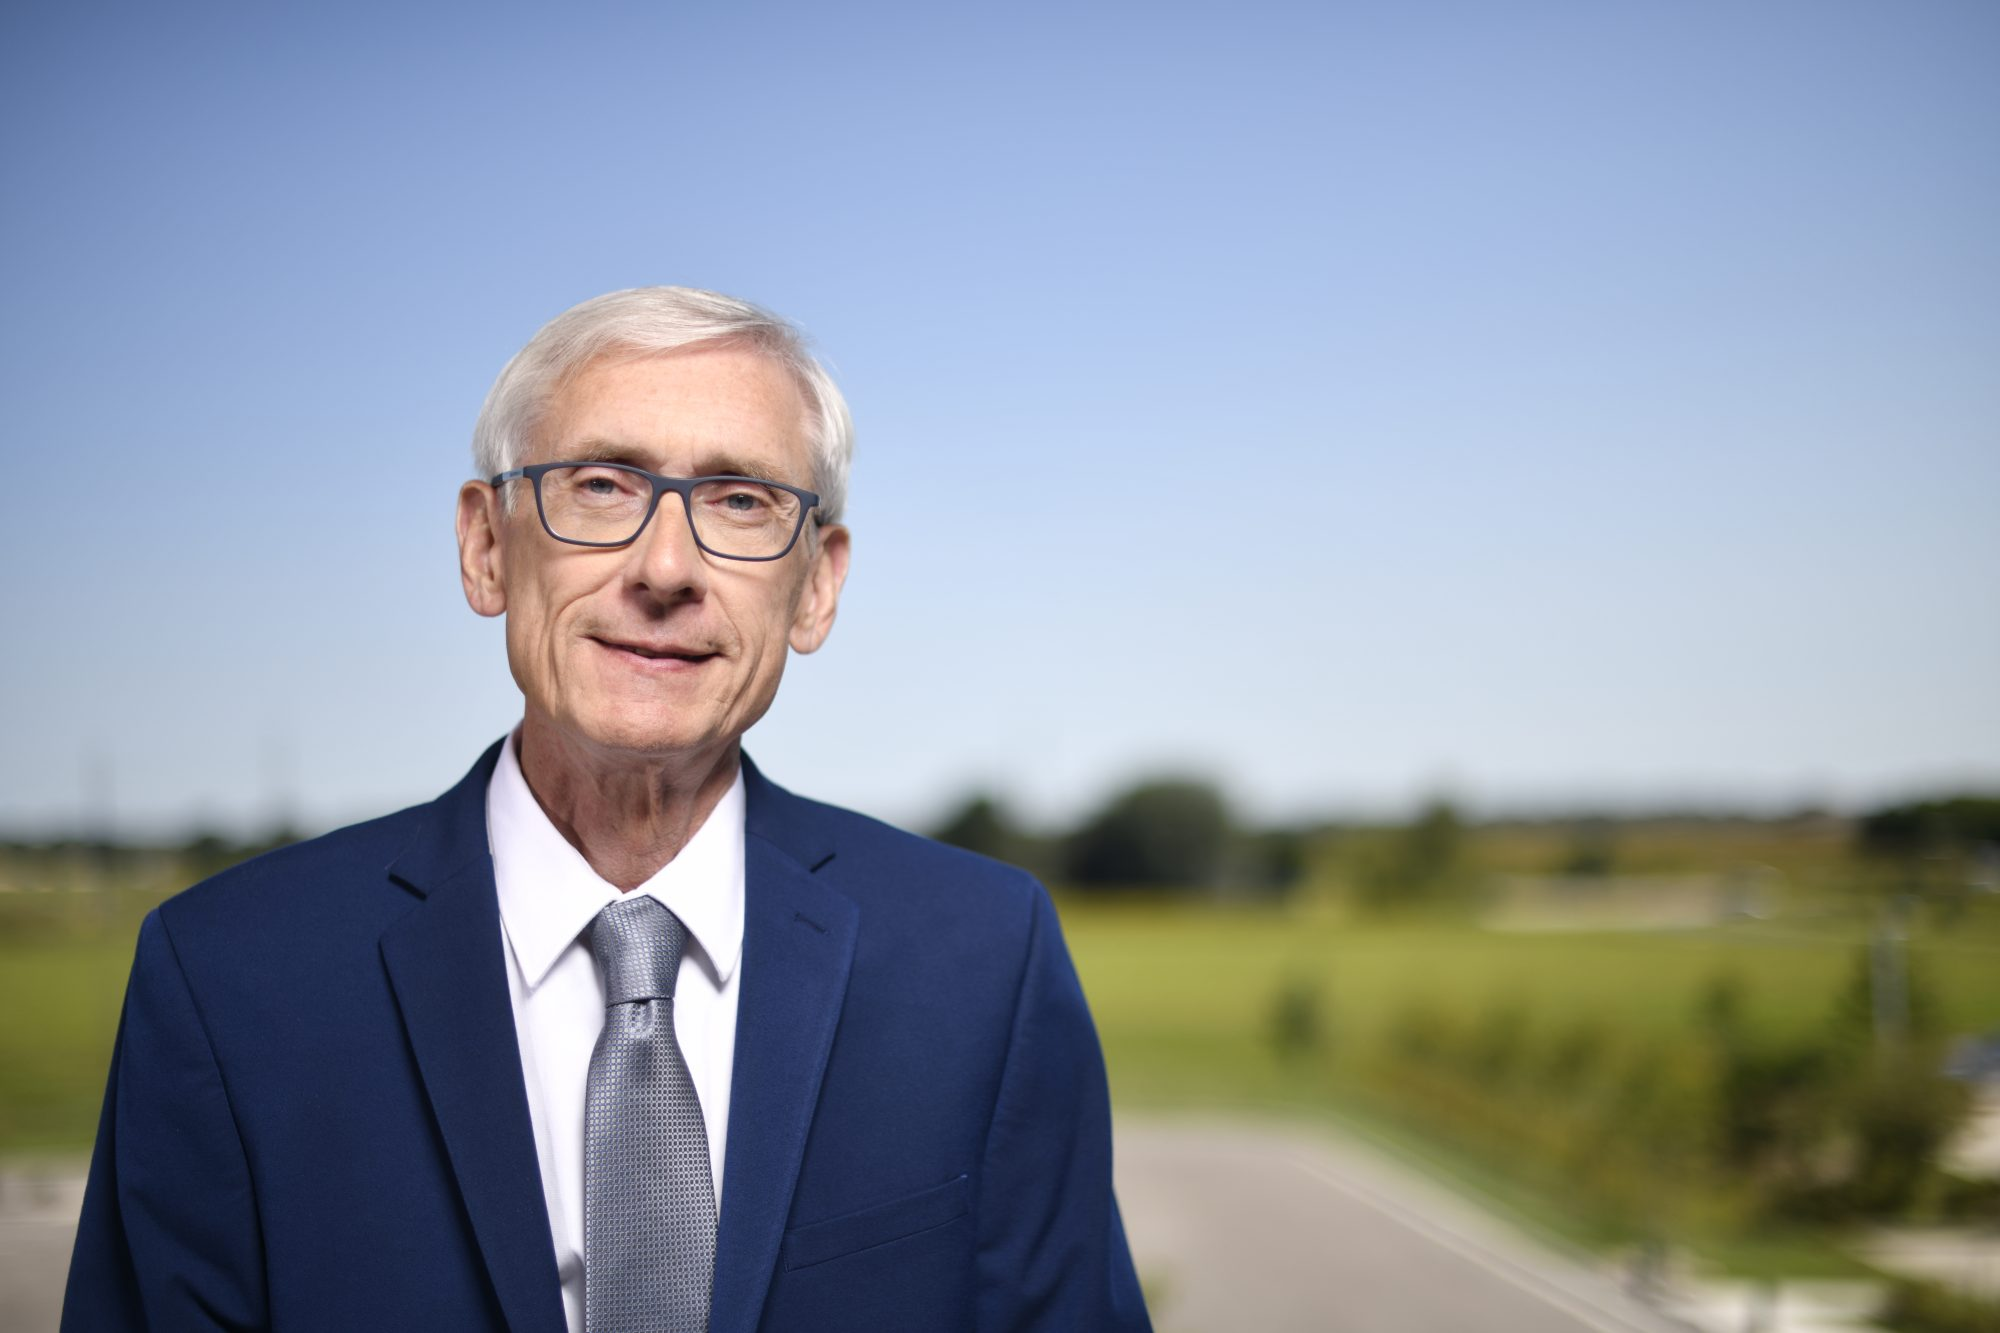 Gov. Evers, DHS Report Highest Single-Day COVID-19 Death Count, First Patient Admitted to Alternate Care Facility at Wisconsin State Fair Park